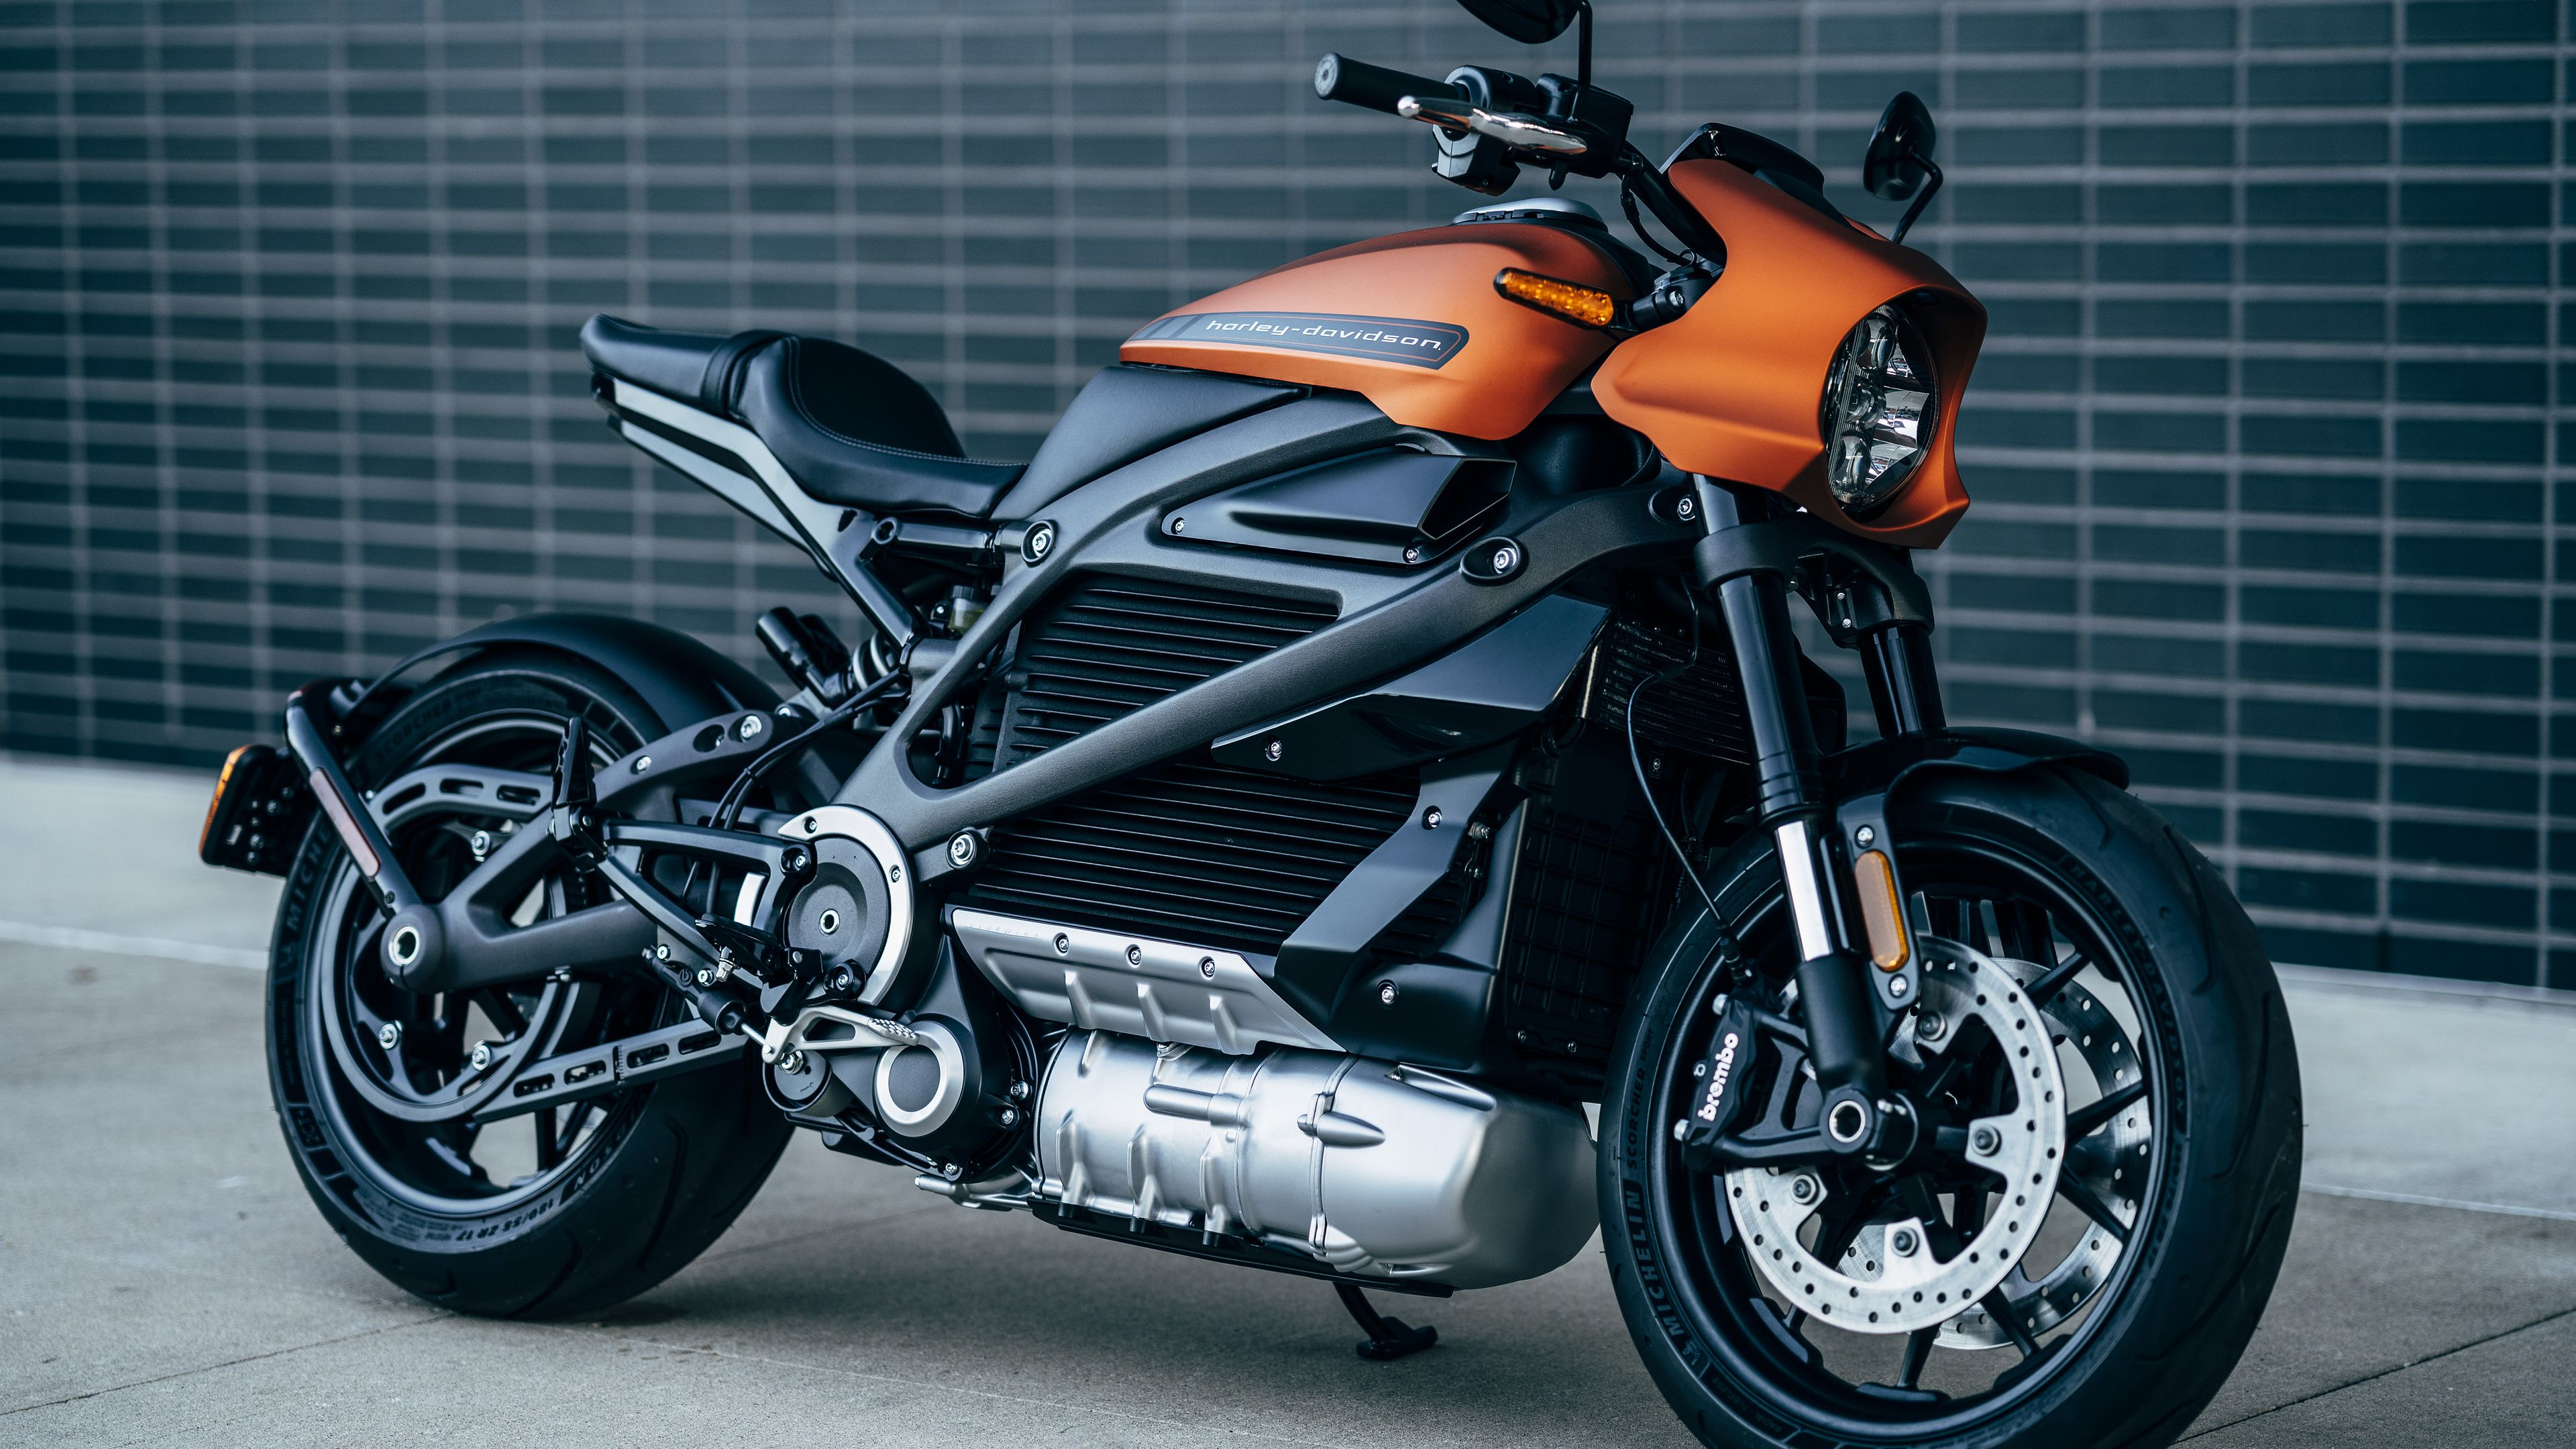 Wallpaper 4k Harley Davidson Livewire 2020 Bikes Wallpapers 4k Wallpapers 5k Wallpapers Bikes Wallpapers Harley Davidson Wallpapers Hd Wallpapers In 2020 Harley Davidson Electric Motorcycle Harley Davidson Pictures Electric Motorcycle